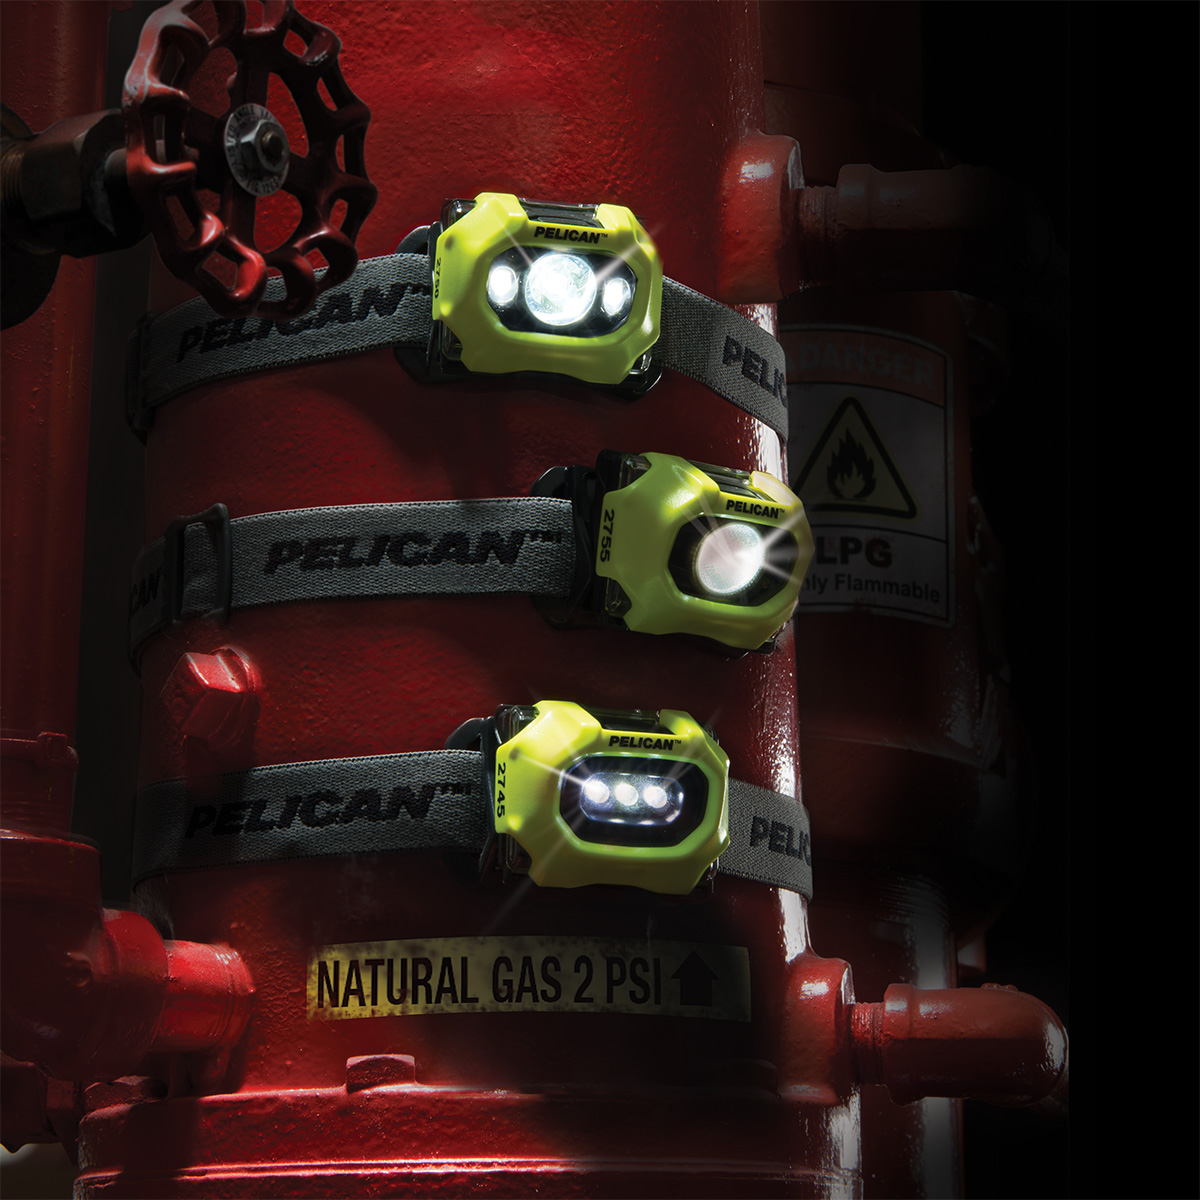 pelican safety rated approval led head light